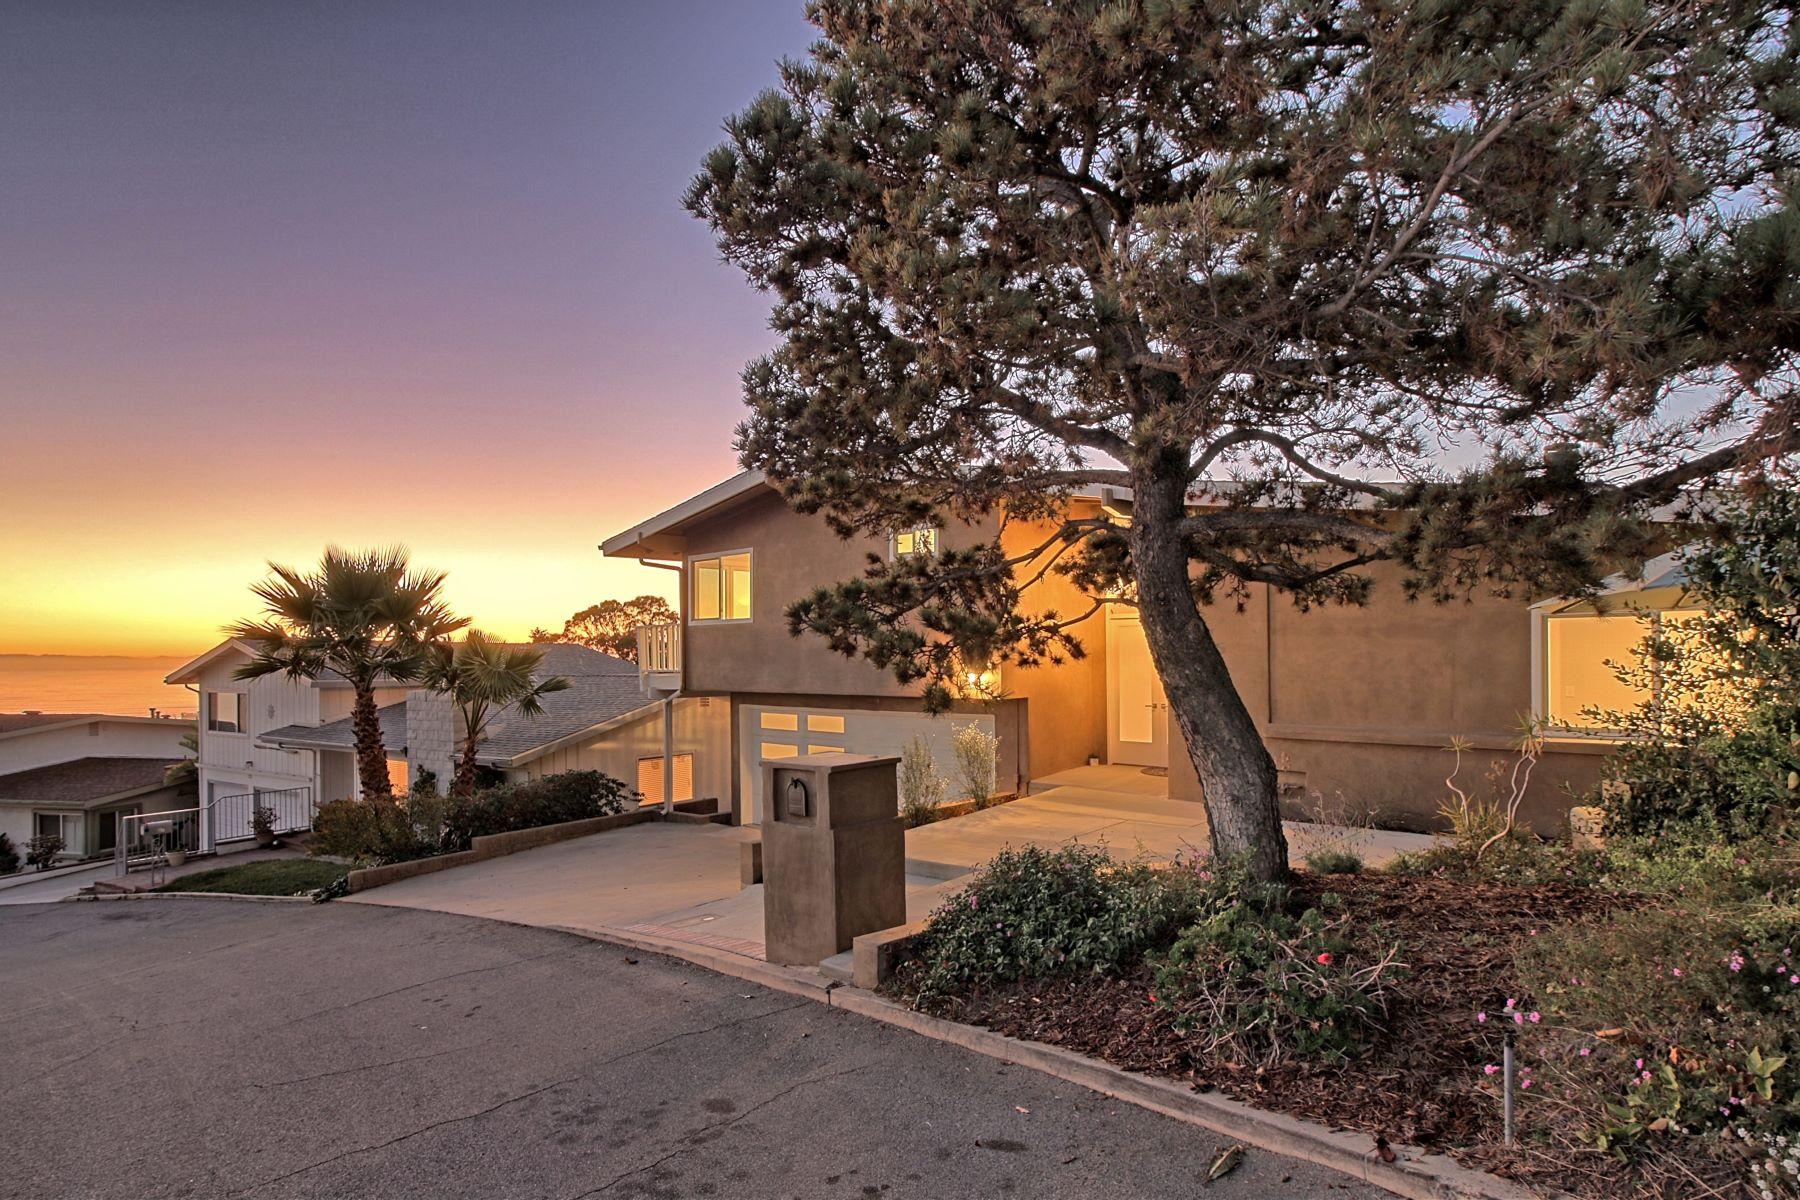 Single Family Homes for Sale at Mariposa Ocean View 375 Mariposa Drive Ventura, California 93001 United States